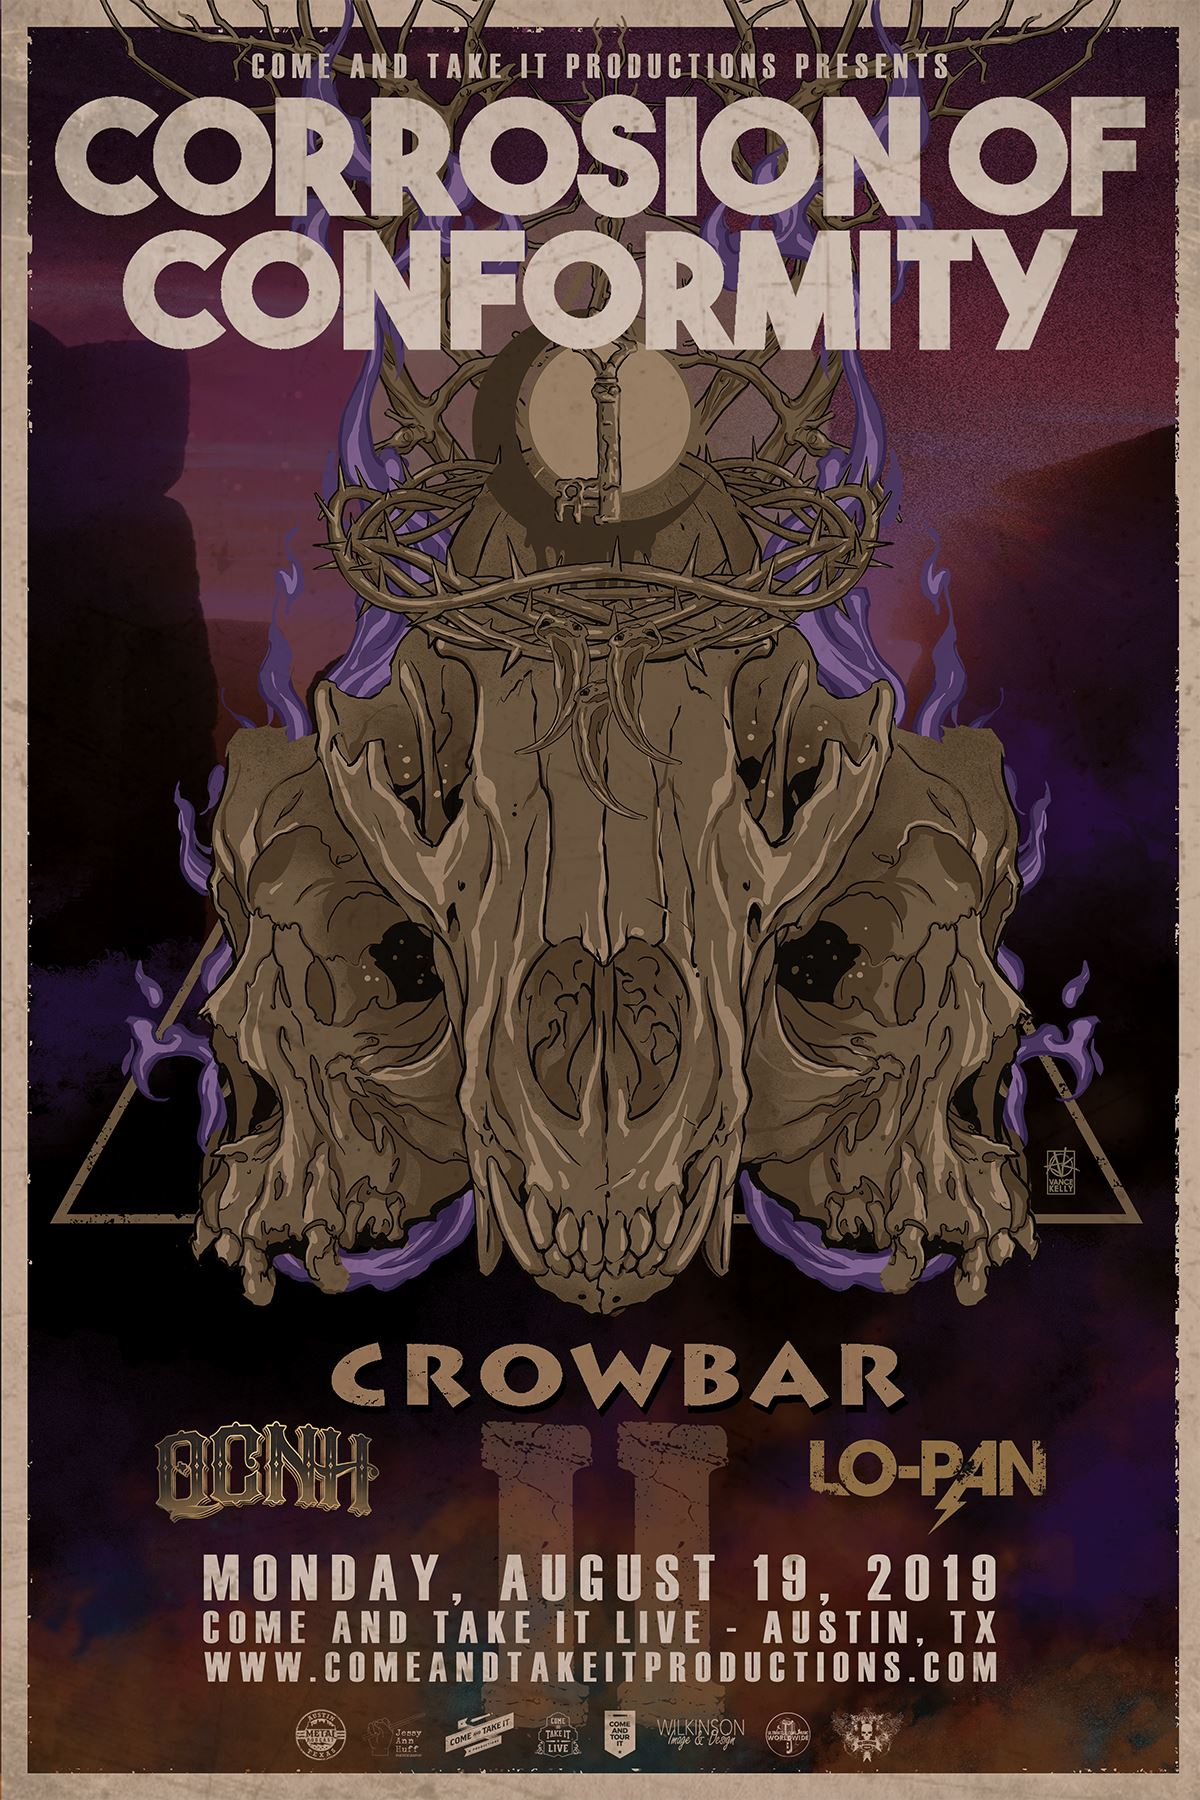 Corrosion of Conformity, Crowbar and more